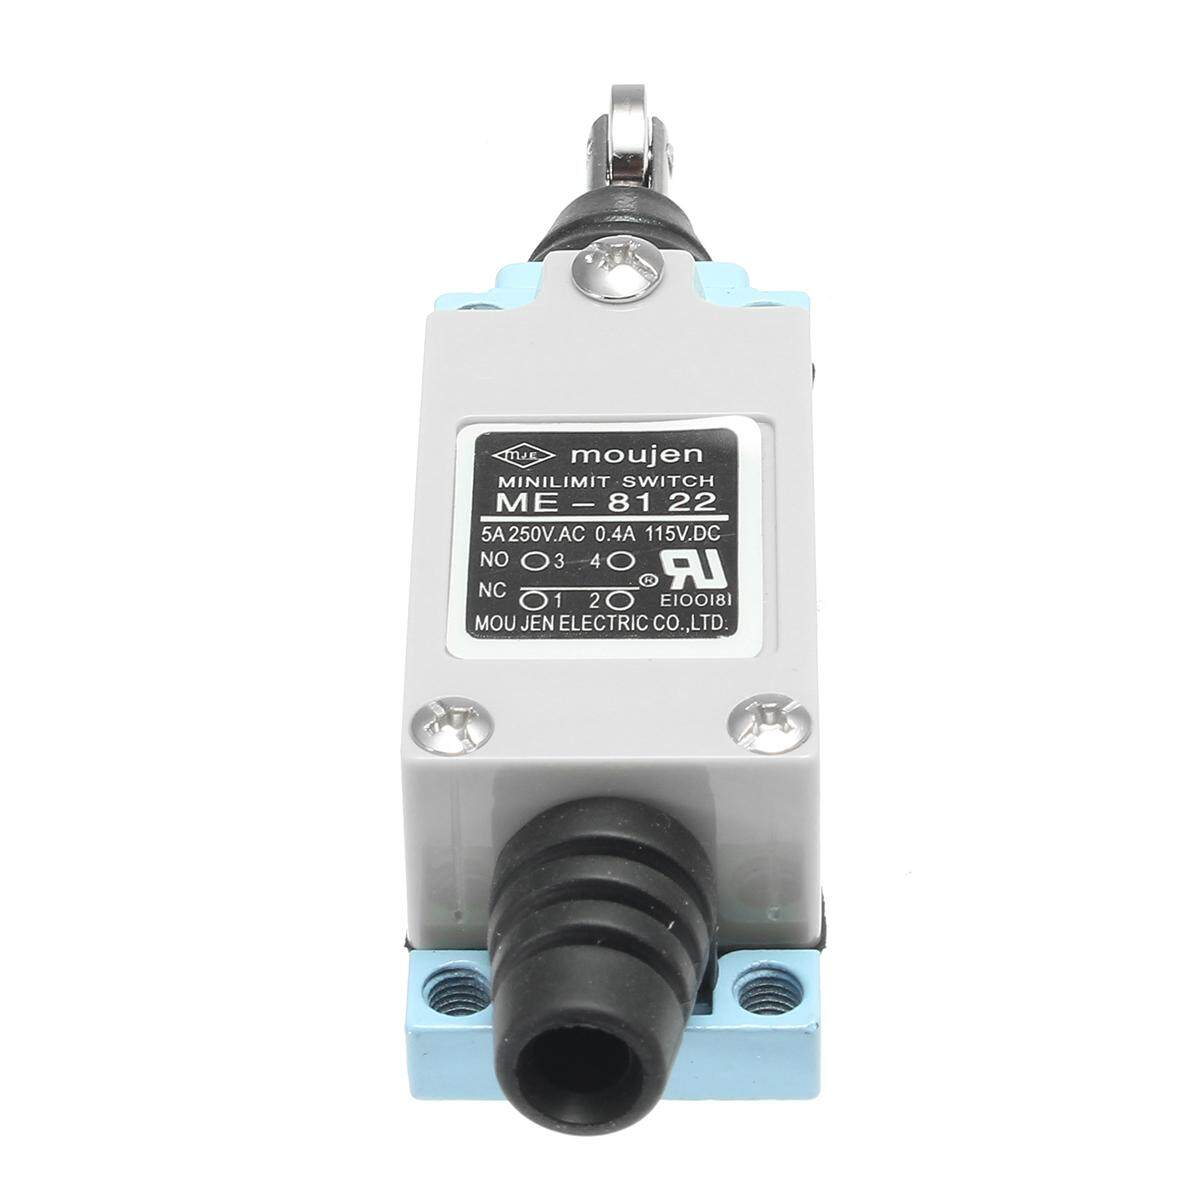 8122 Limit Switch Ip65 Aktuator: Roller Batang Pancing Lengan Kumparan Pegas Tombol Nc Tanpa By Motorup.